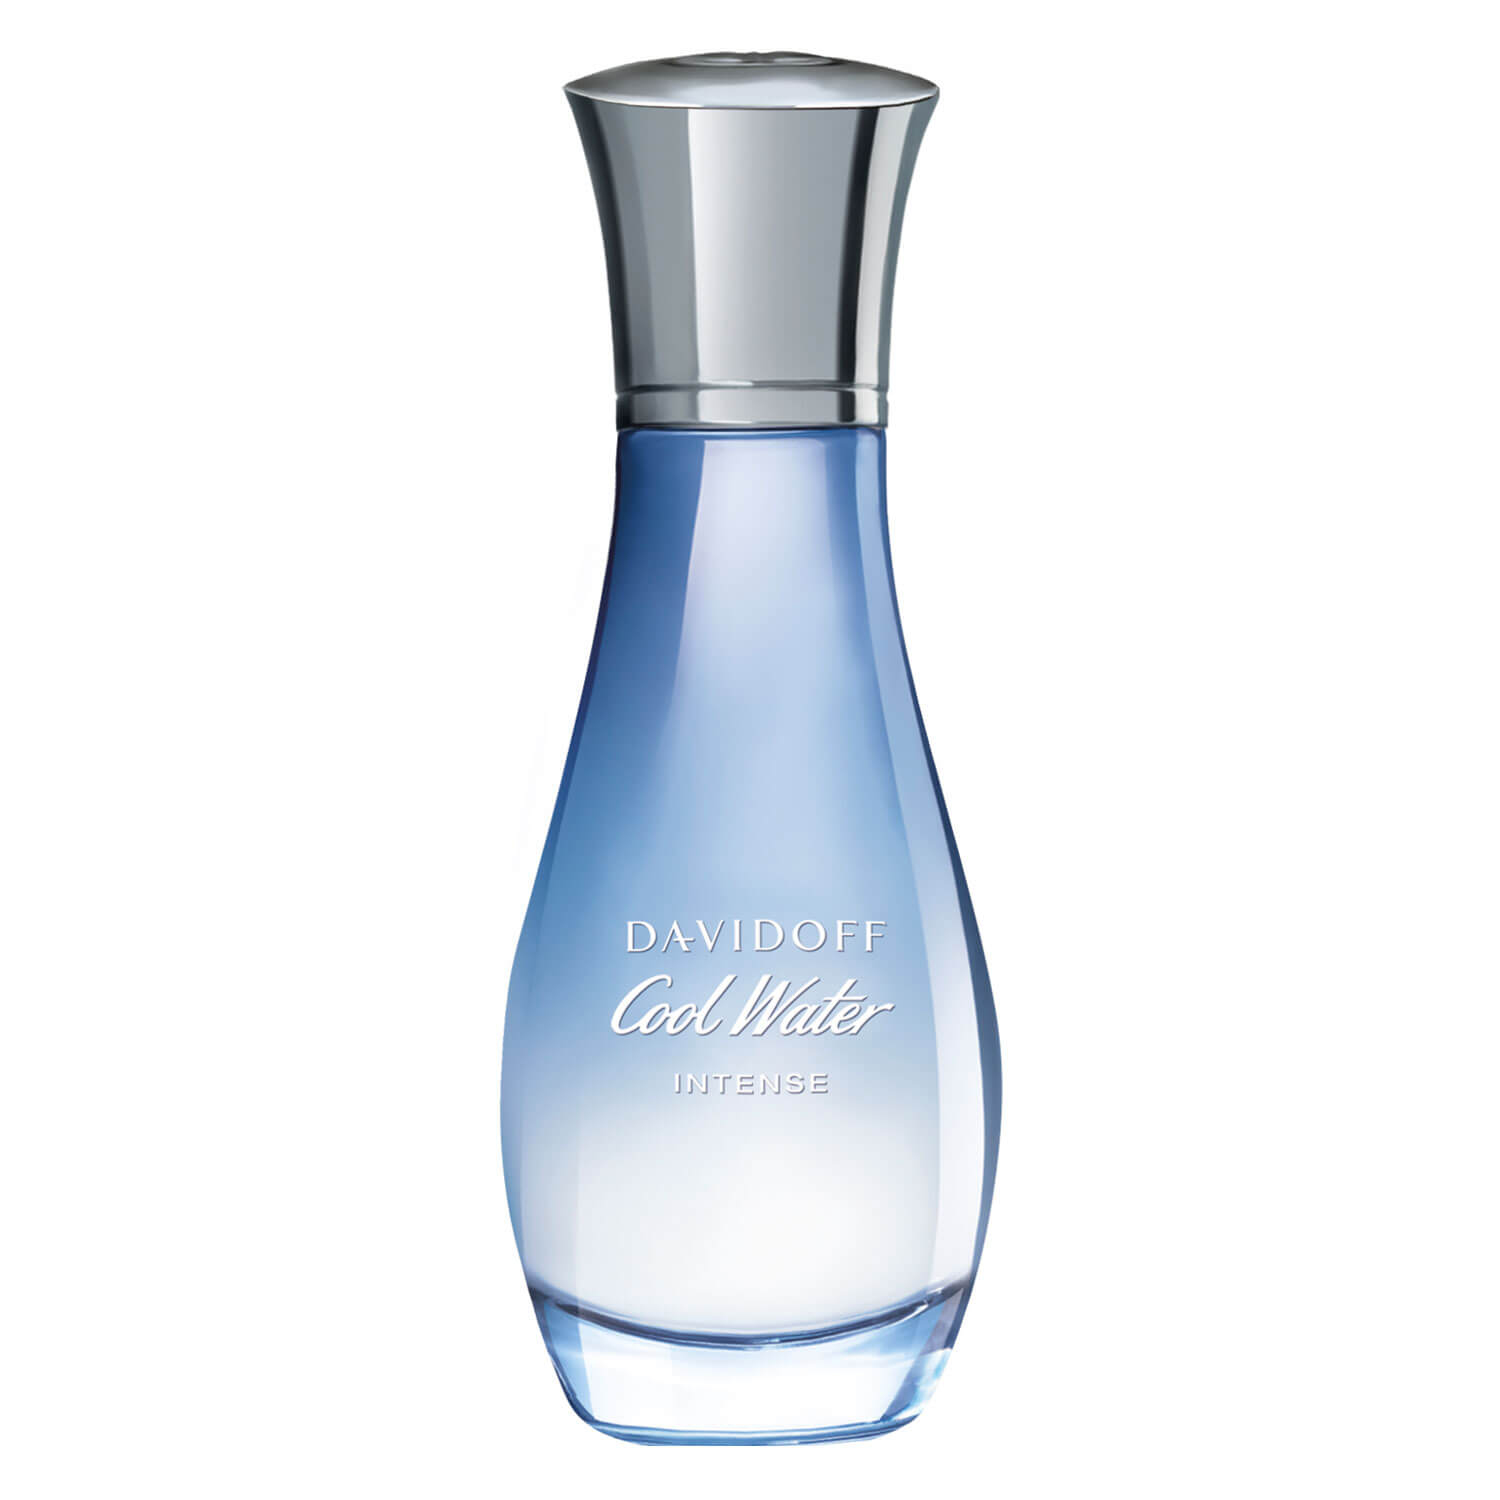 Cool Water - Intense Eau de Parfum For Her